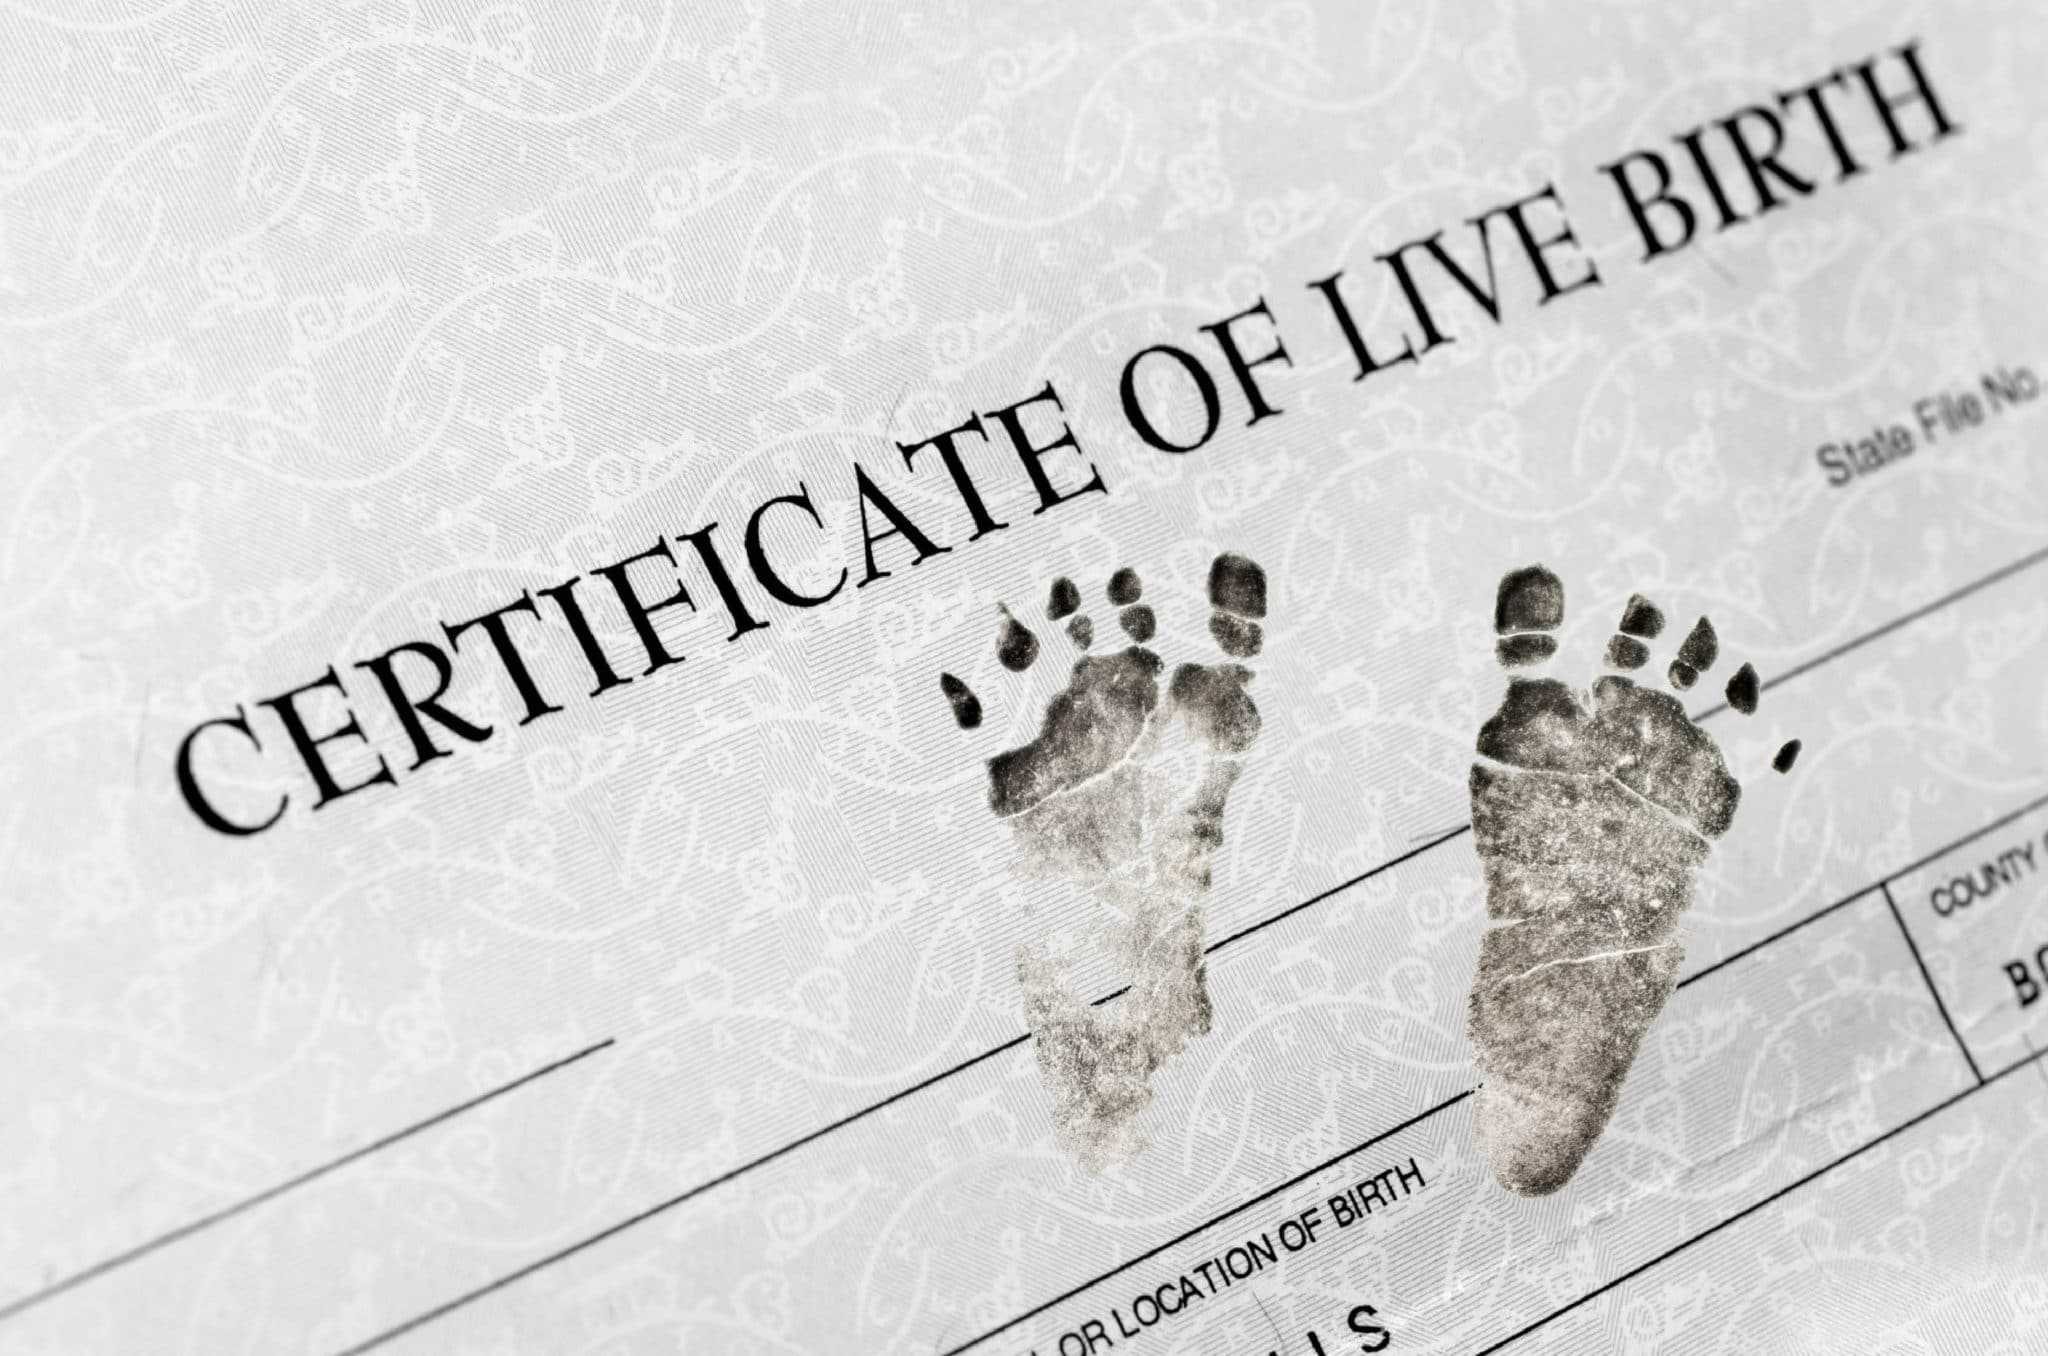 Texas settlement affirms birth certificates protect childrens rights 23 aug texas settlement affirms birth certificates are essential xflitez Gallery